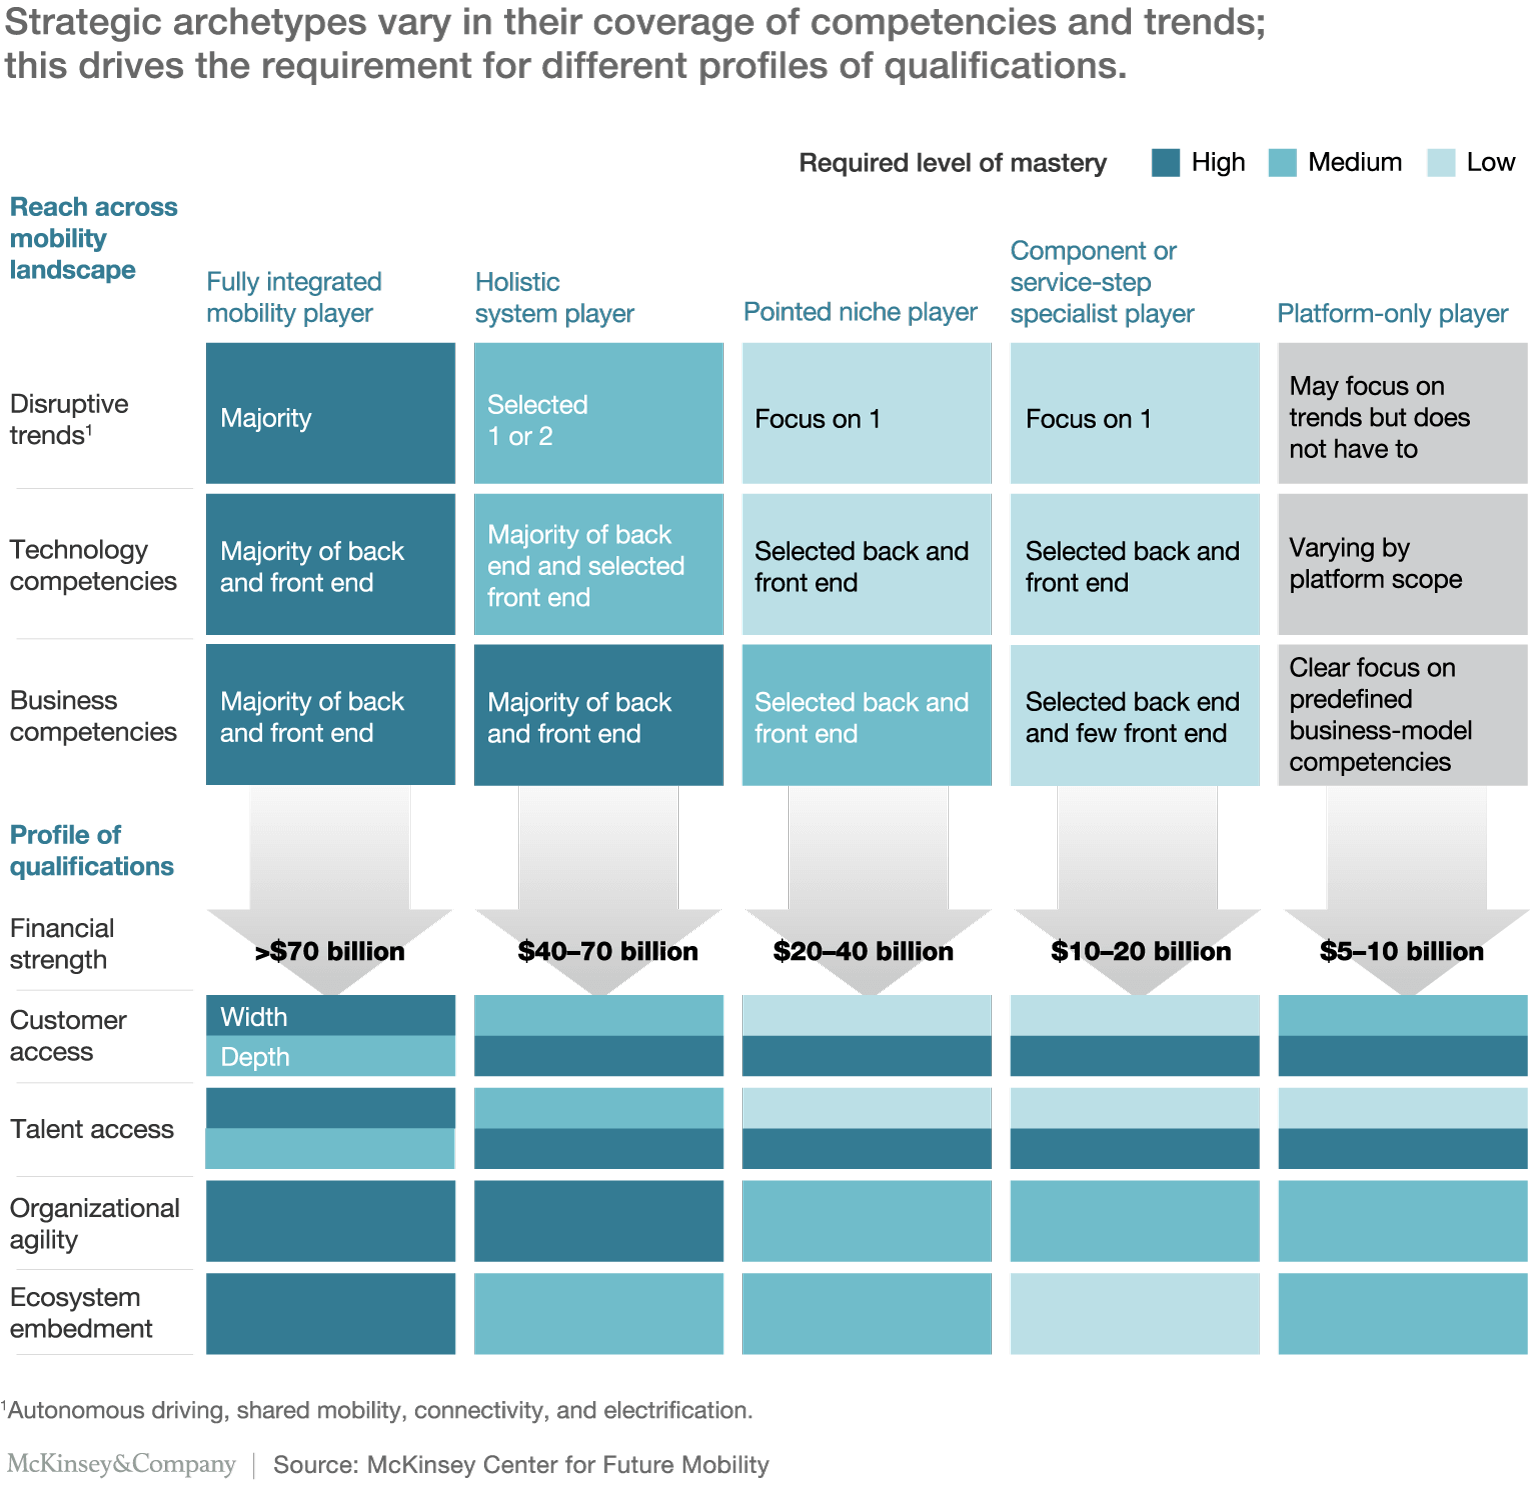 reach across mobility landscape and profile of qualifications for the 5 strategic archetypes